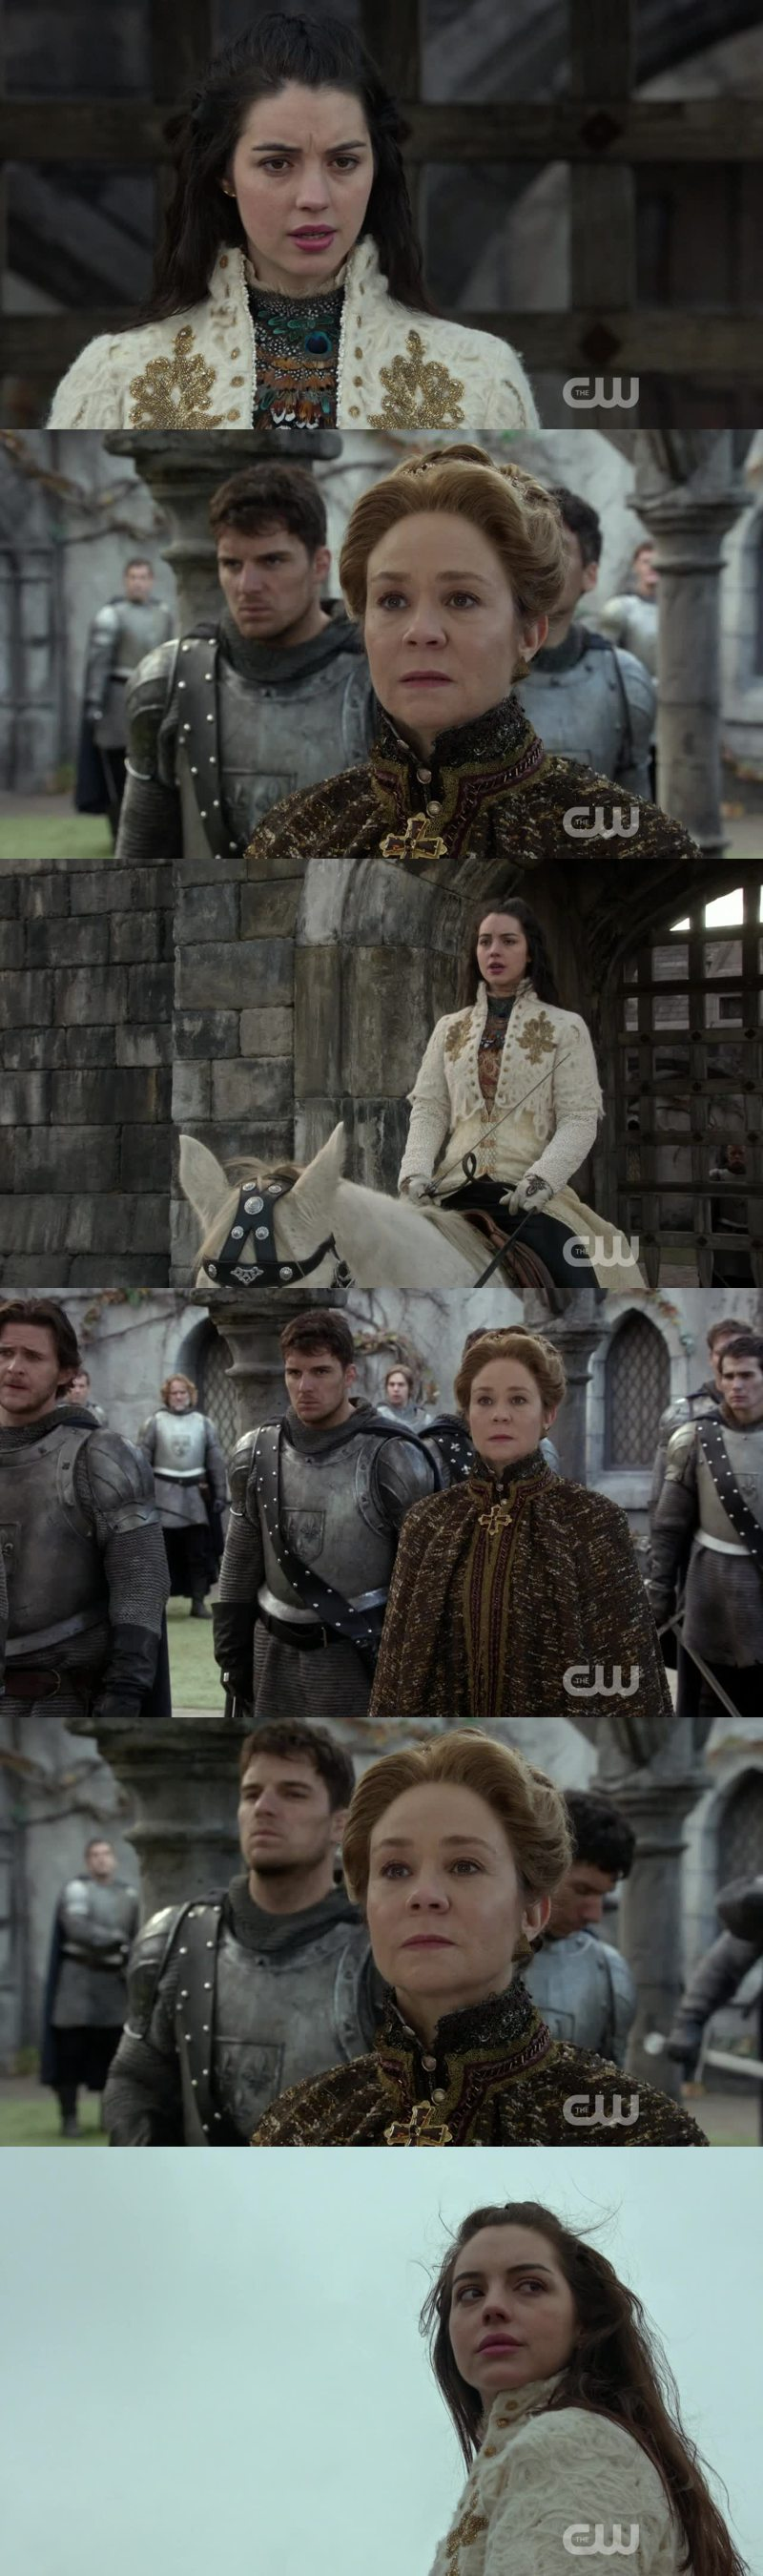 Yes their alliance made a long long way. When I think they first disliked each other, I can't believe it. Mary was such a cutiepie coming Back to help Catherine. I bet the regent never had such kindness in her entire life. This scene completely had my heart melt. I love them both.